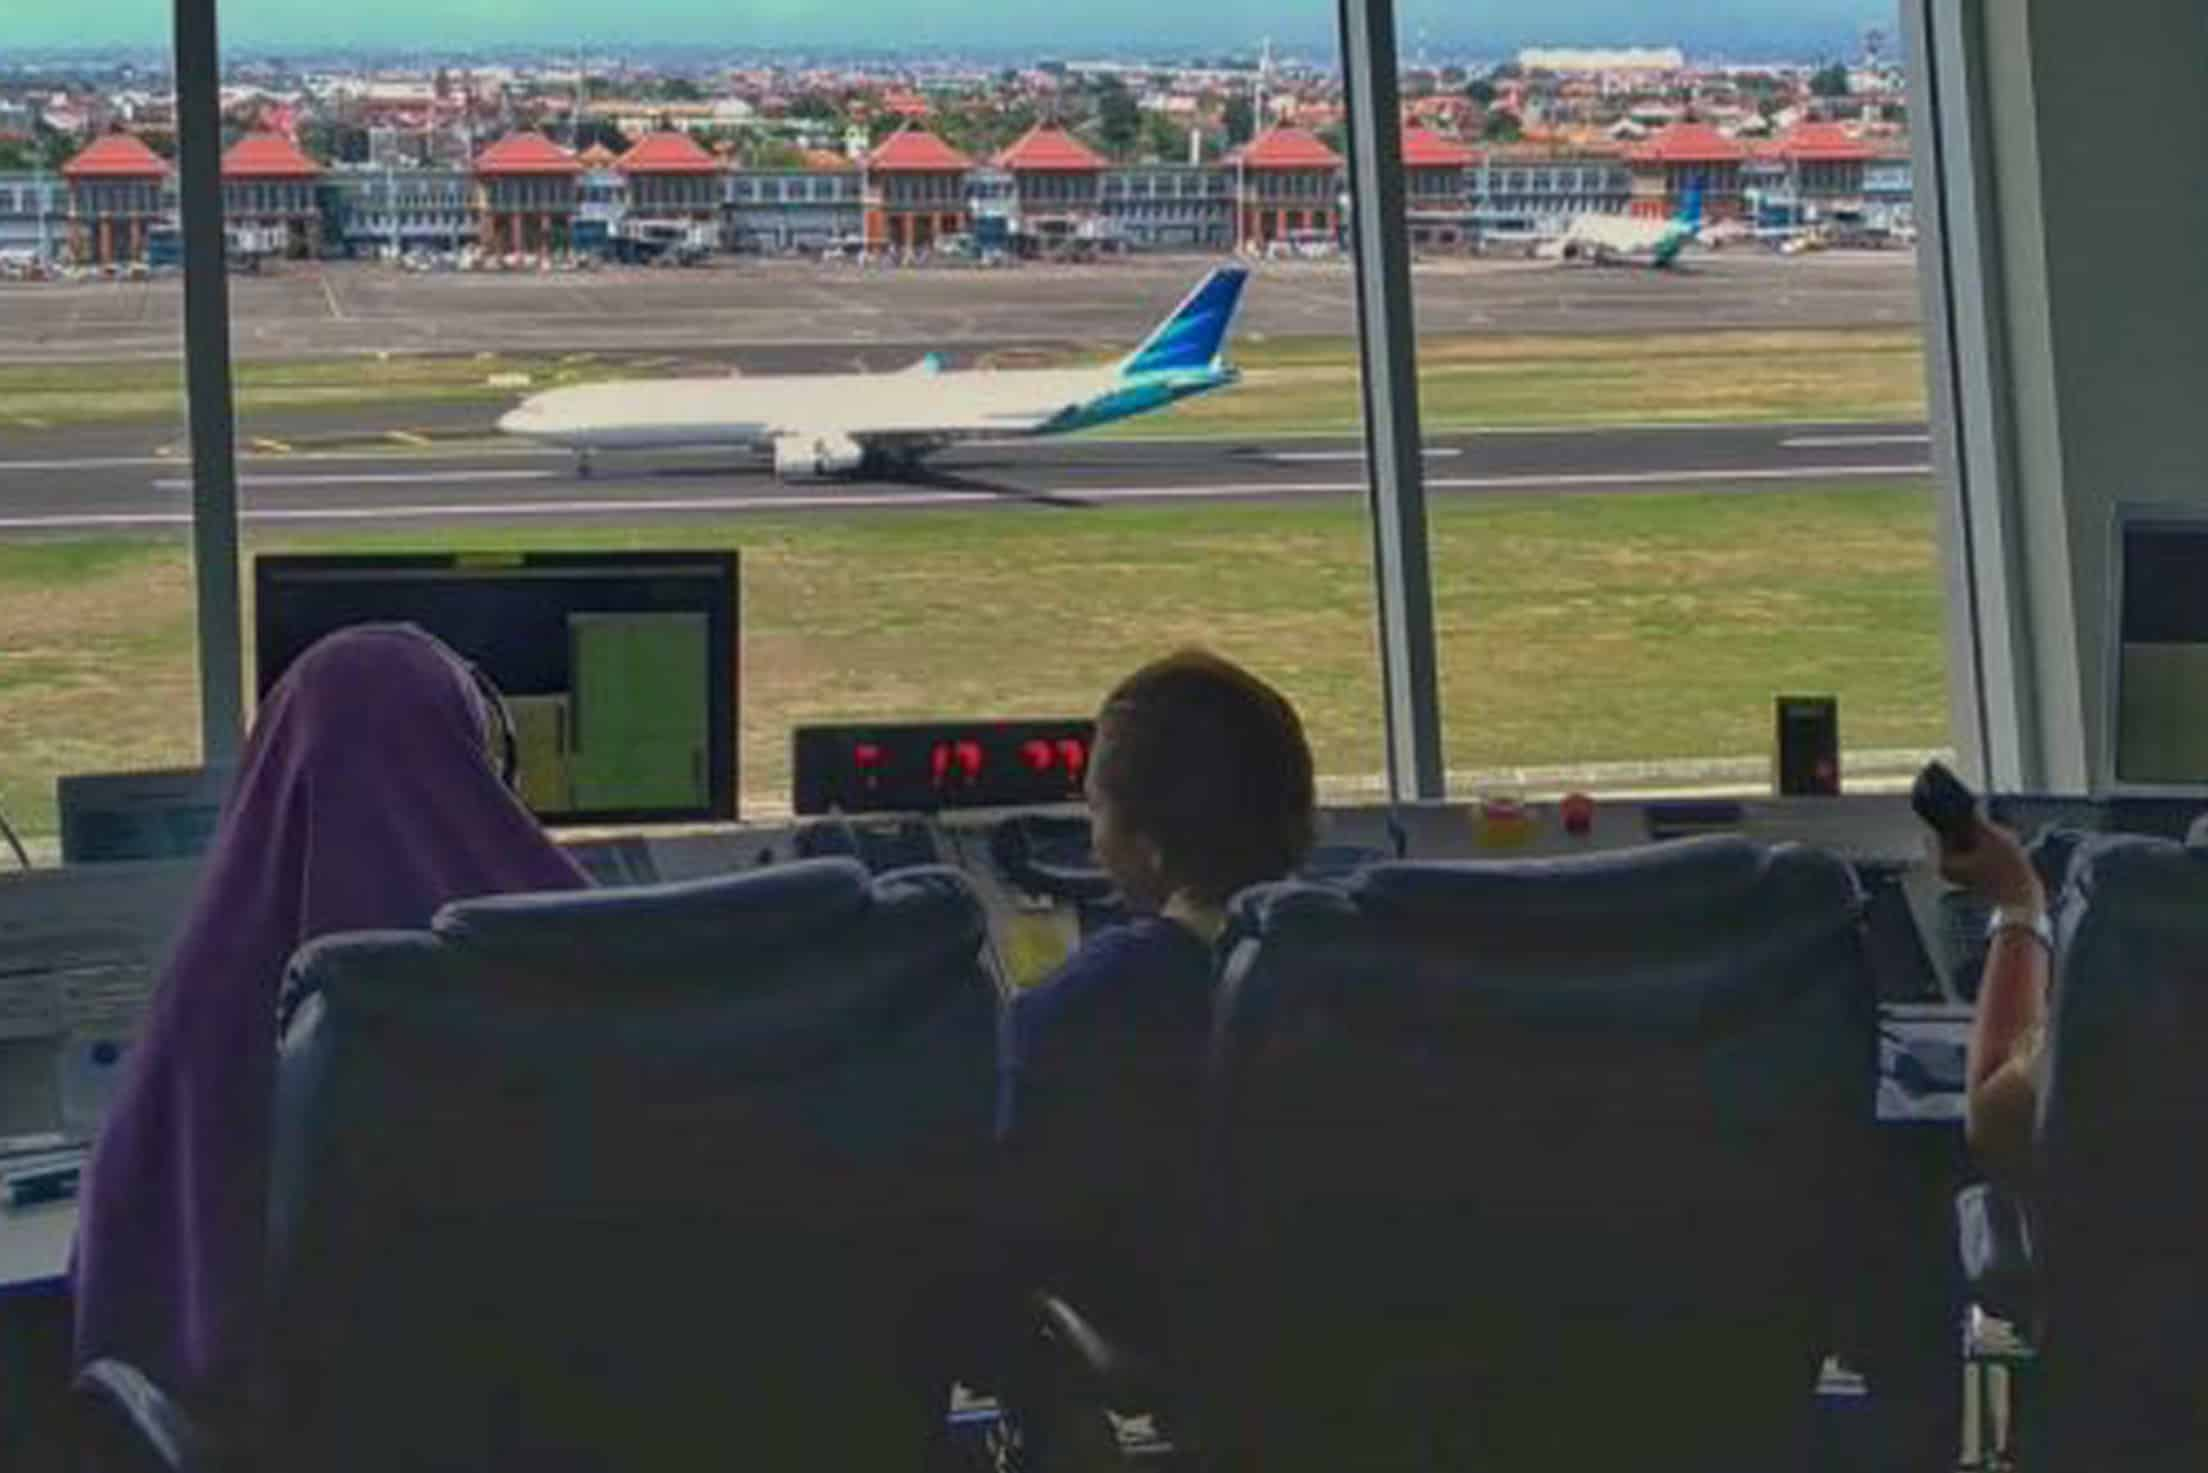 TOURISM REOPNED, NUMBER OF PASSENGERS AND FLIGHTS AT NGURAH RAI AIRPORT CONTINUES TO INCREASE